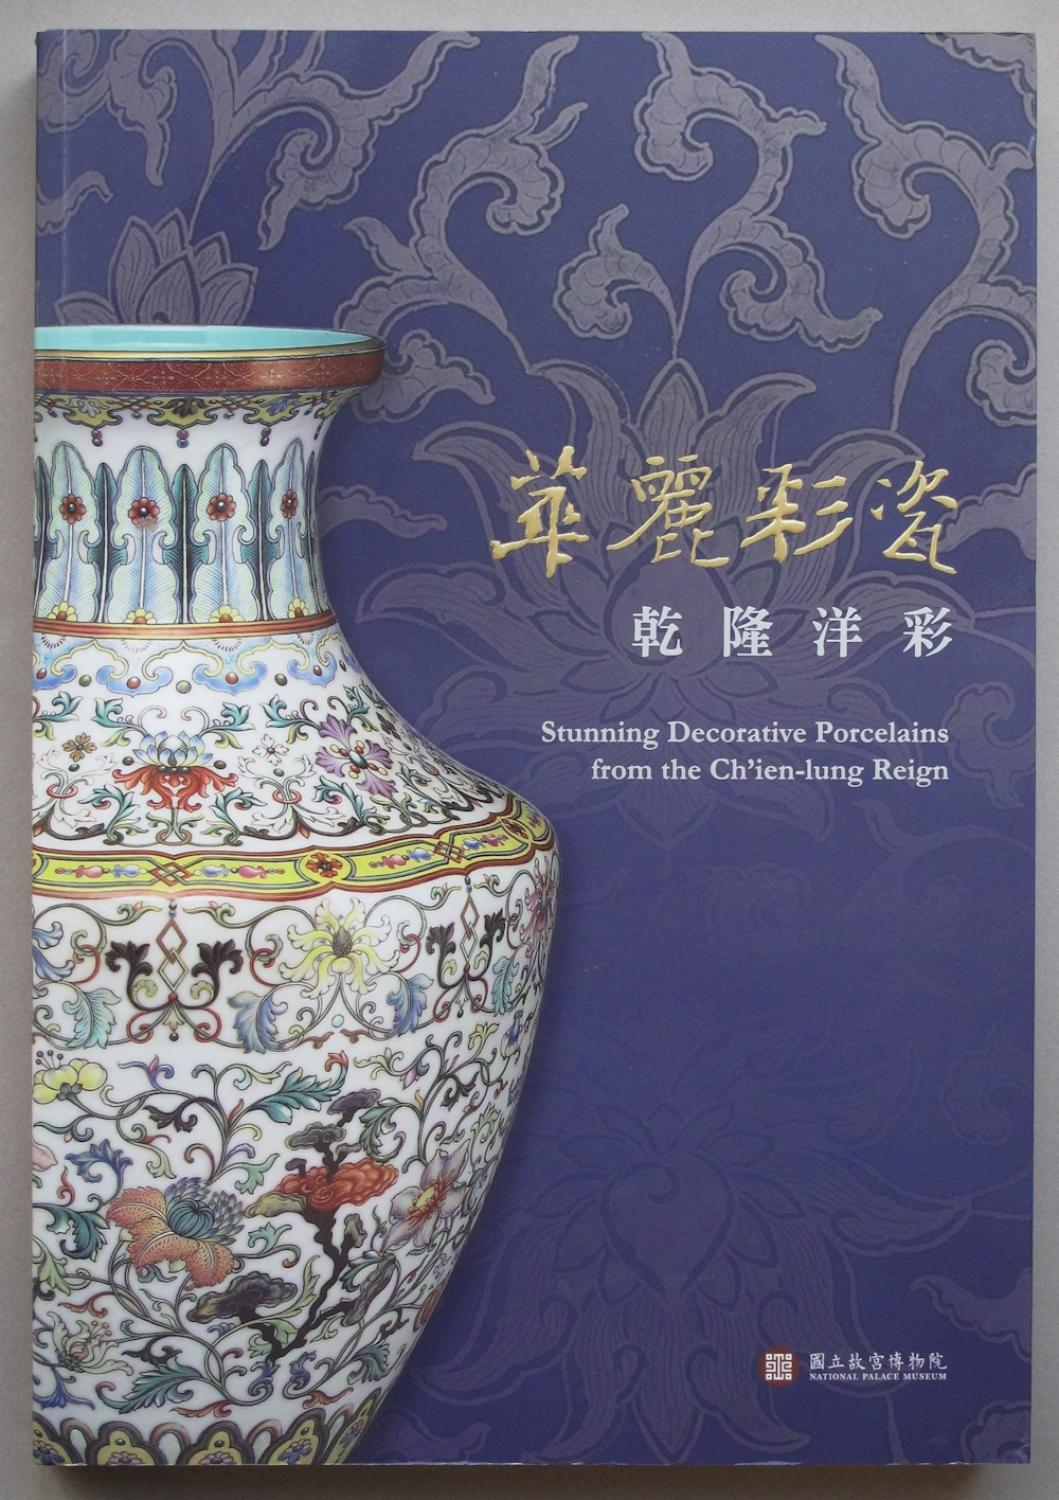 National Palace Museum: Ch'ien-lung porcelain